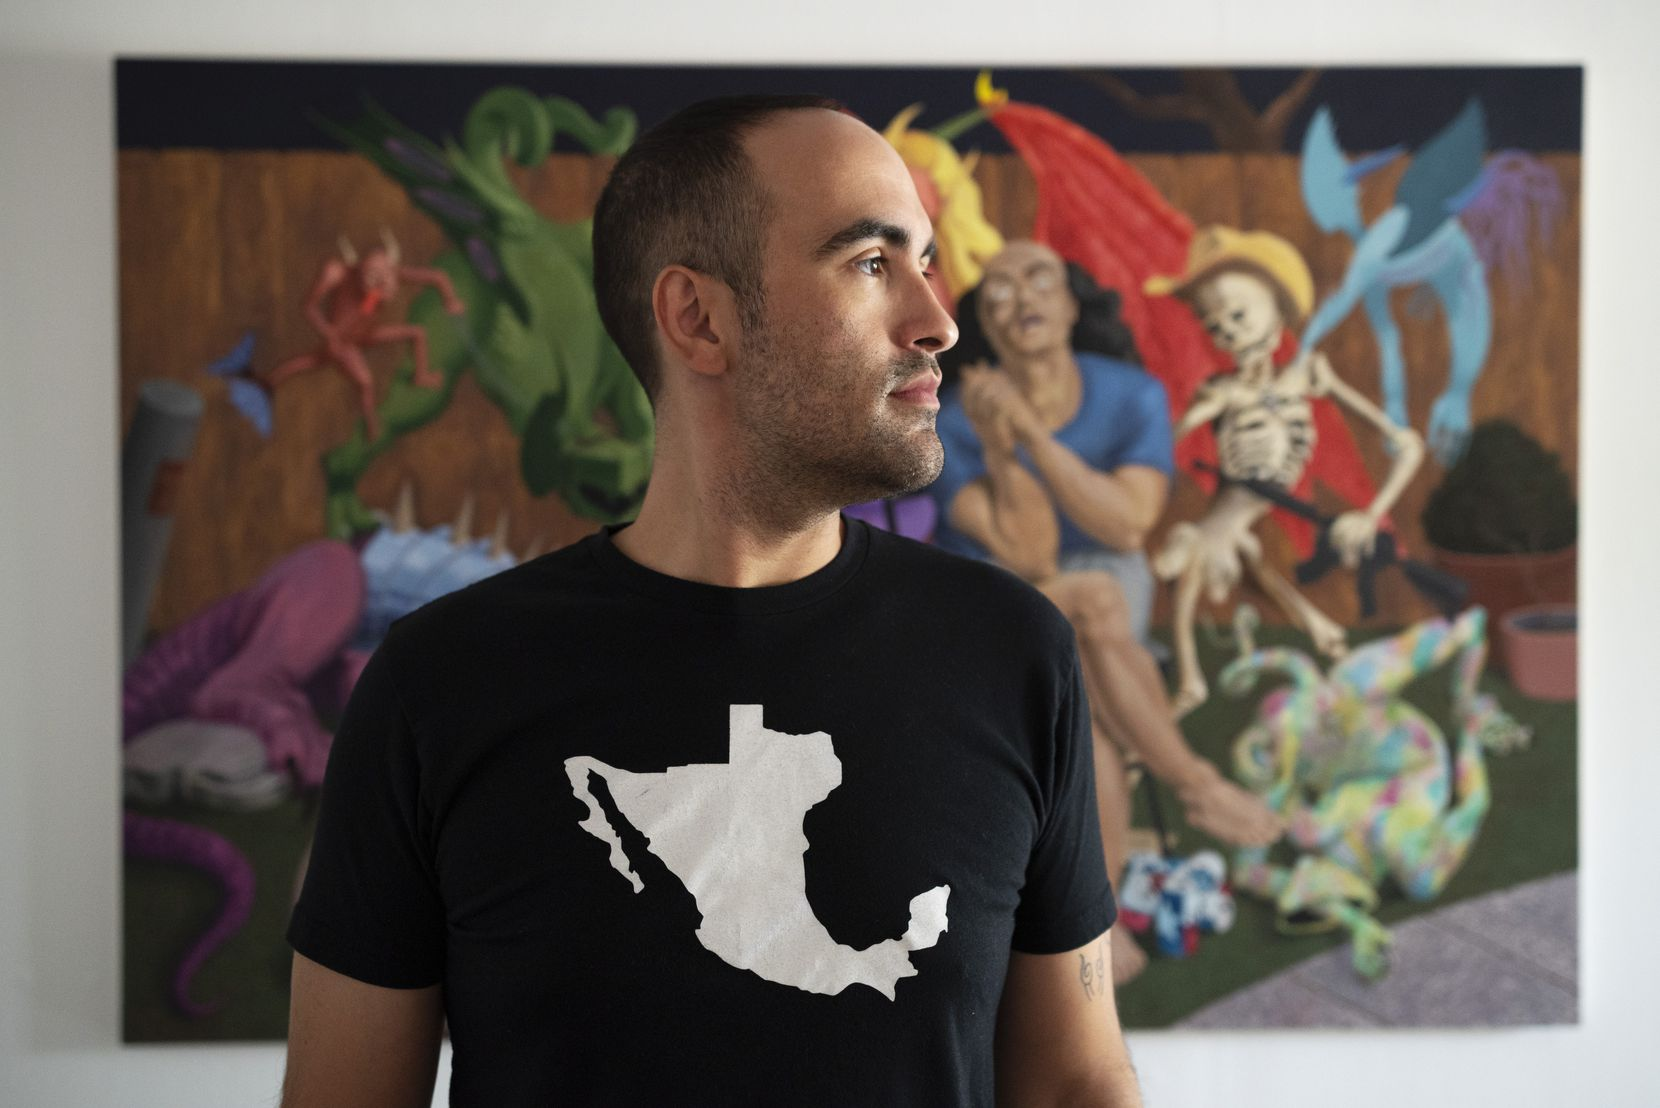 """Artist Francisco Moreno with one of his pieces of art work titled """"The Allegory of Weed Gummy and Alcohol Induced Anxiety,"""" on display at the Oliver Francis Gallery in Dallas."""